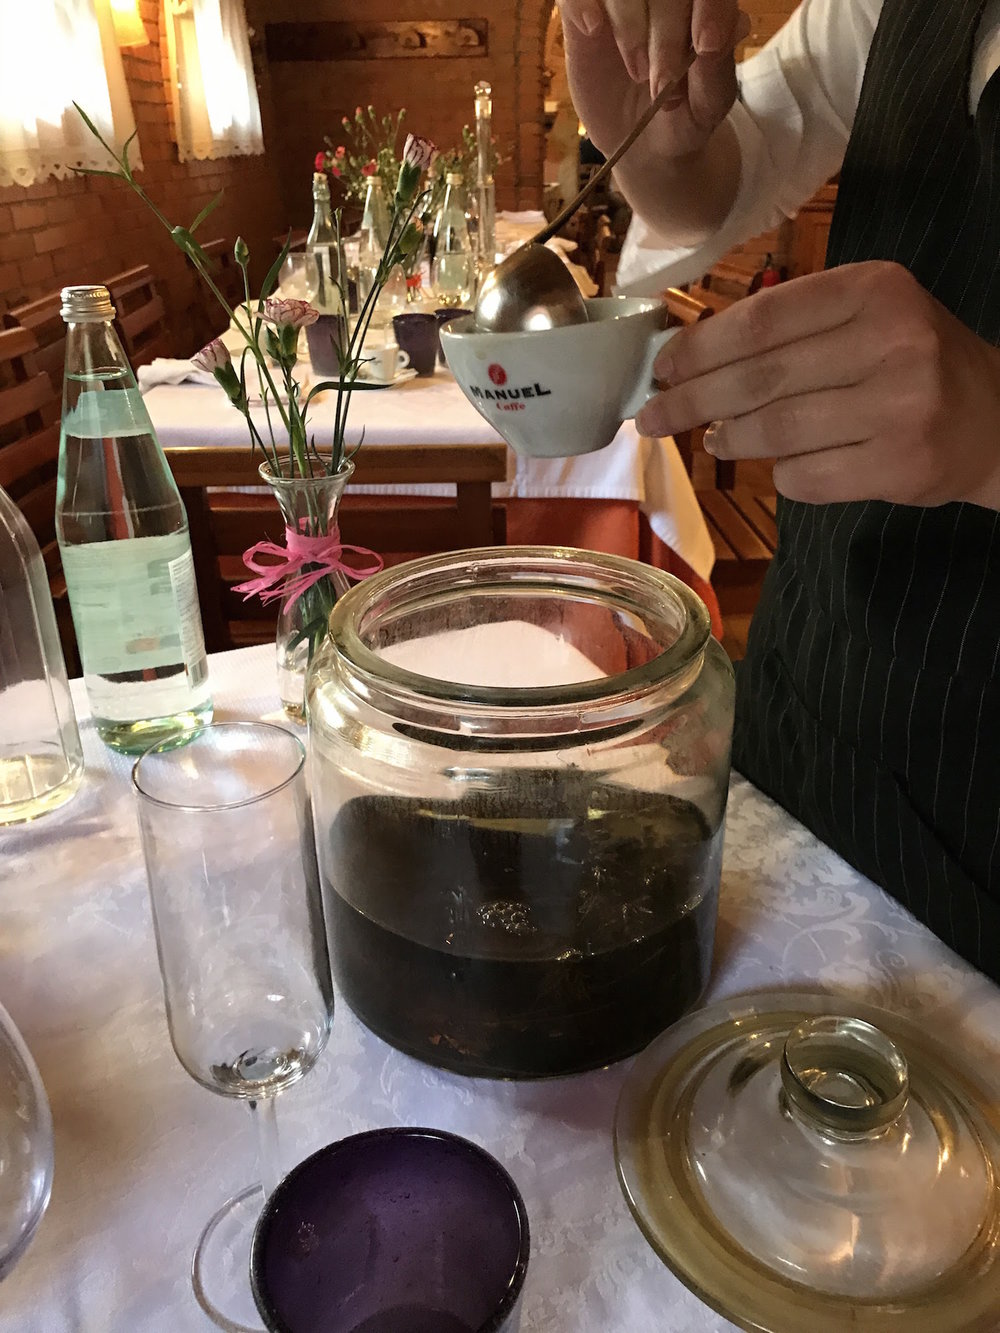 The waitress came around with several kinds of house-made grappa served in our coffee cups.